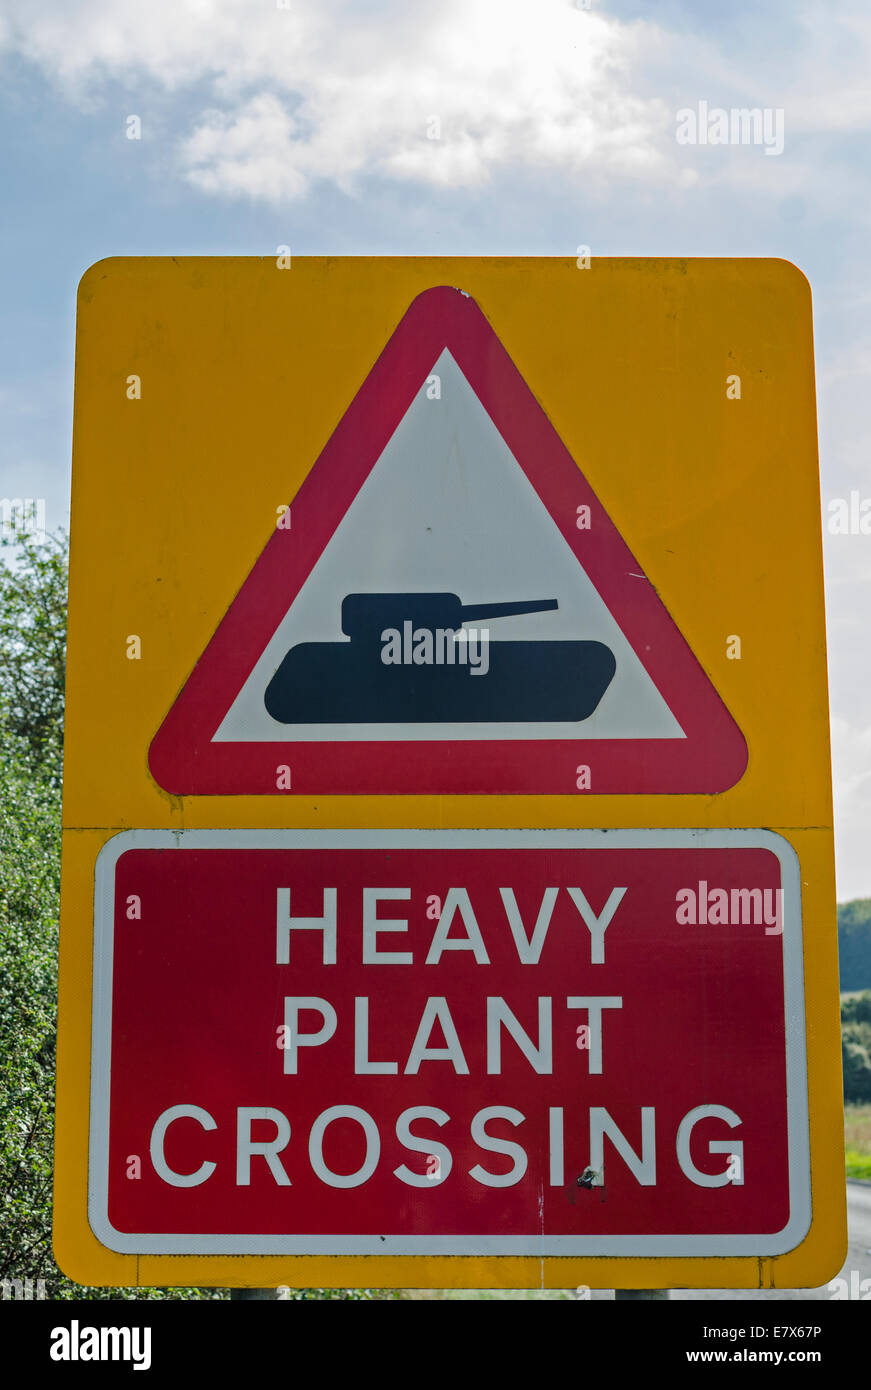 Tank Crossing Stock Photos & Tank Crossing Stock Images - Alamy